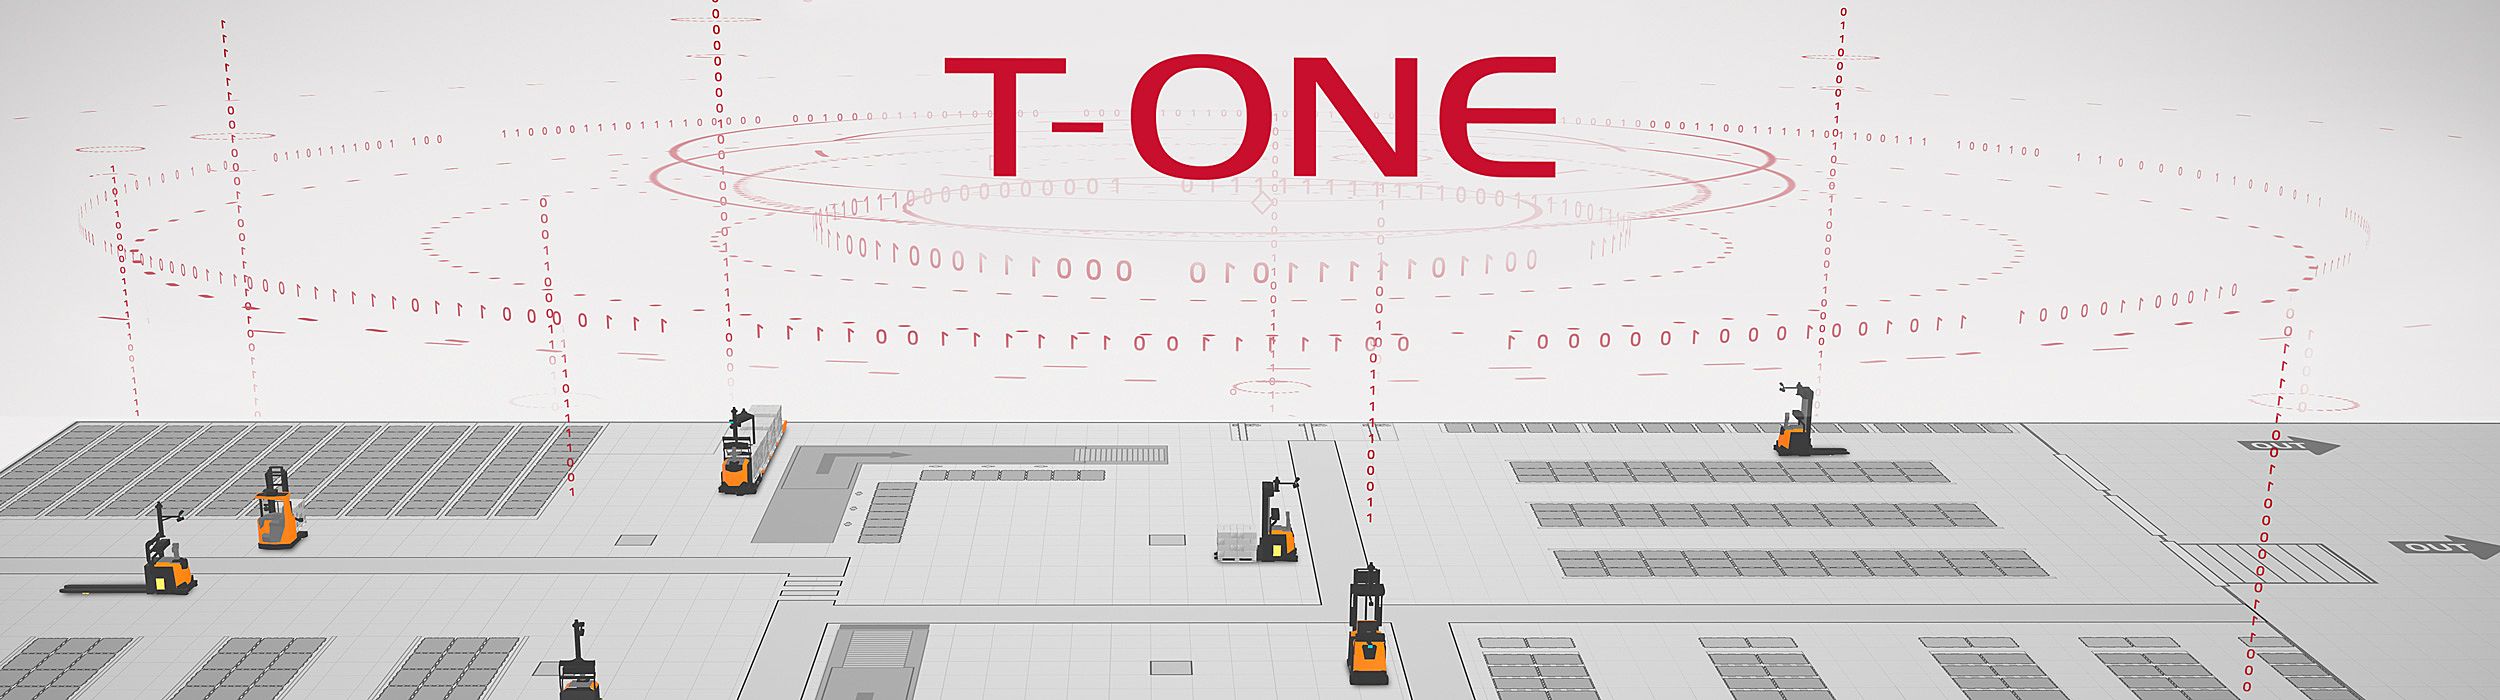 Toyota's AGV automasjon software T-ONE